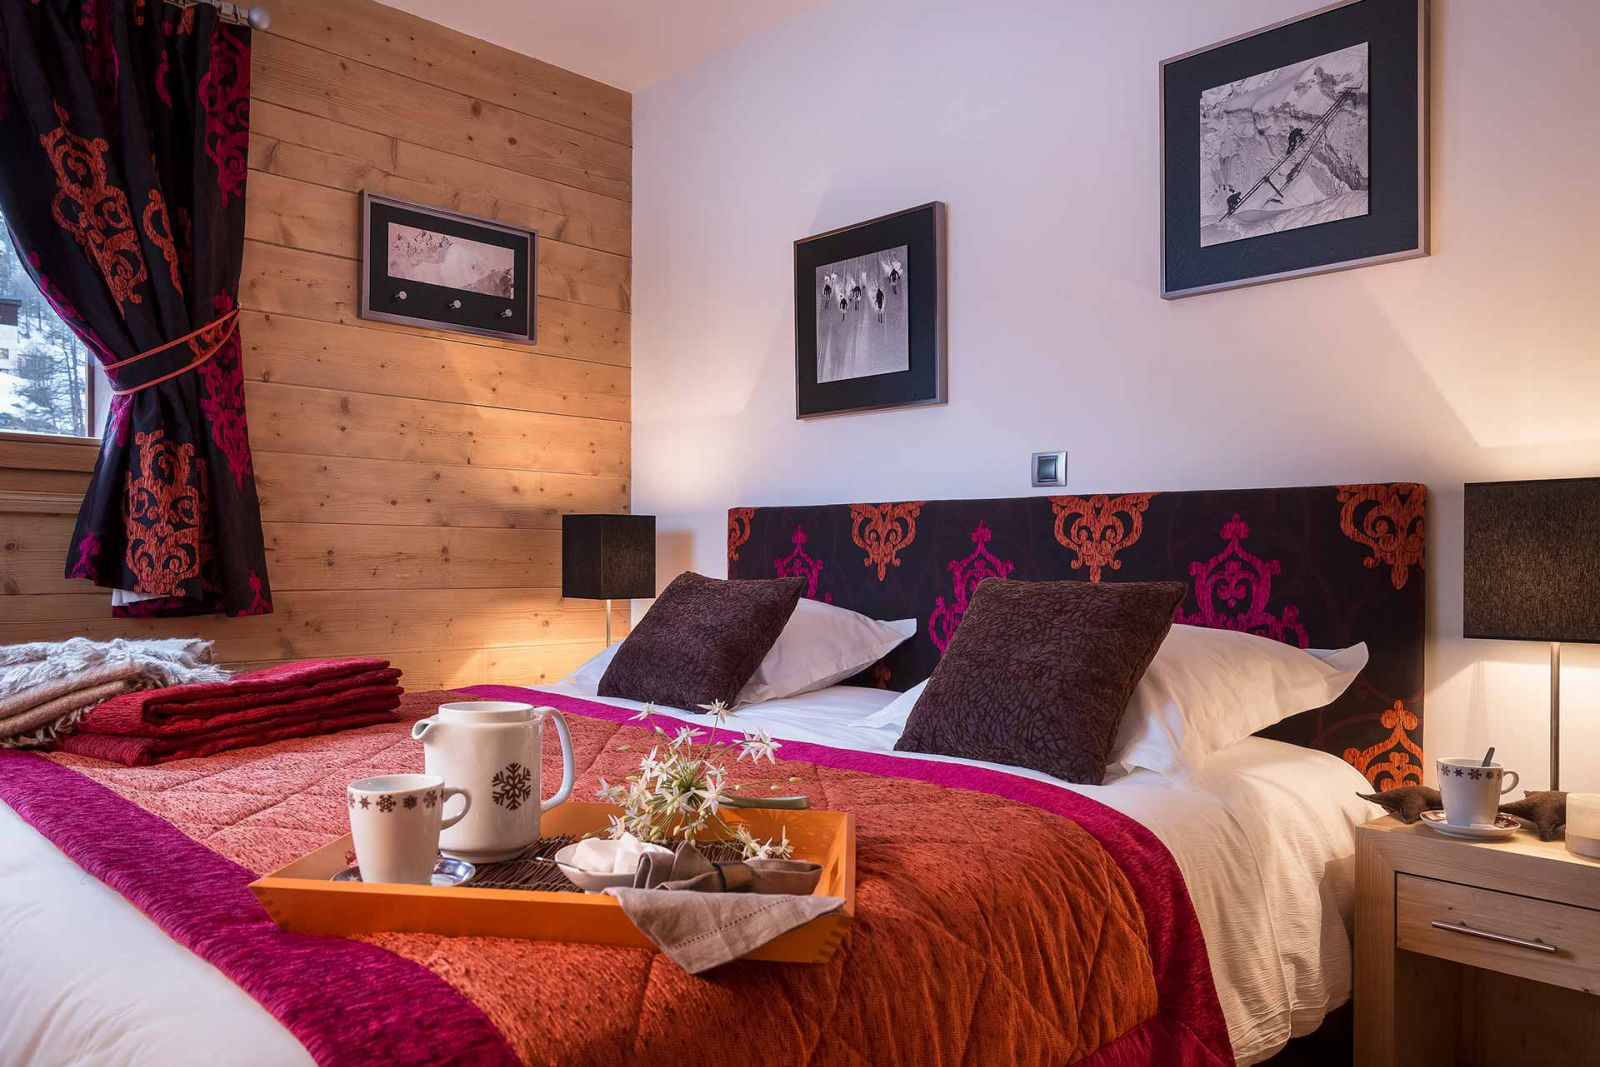 Le Lodge des Neiges, Tignes 1800 (Self catered apartments) - Typical interior style